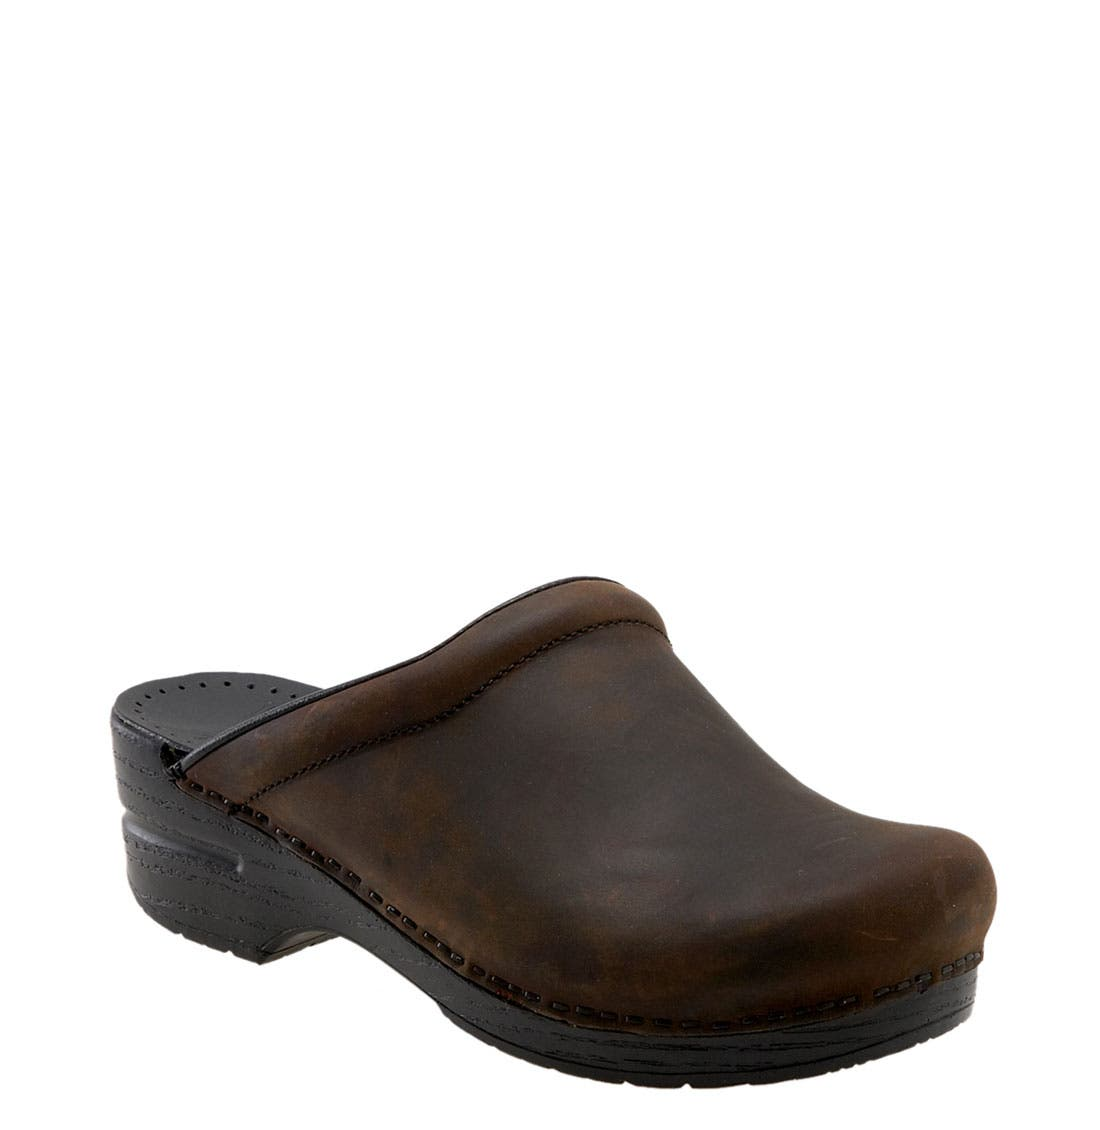 'Sonja' Oiled Leather Clog